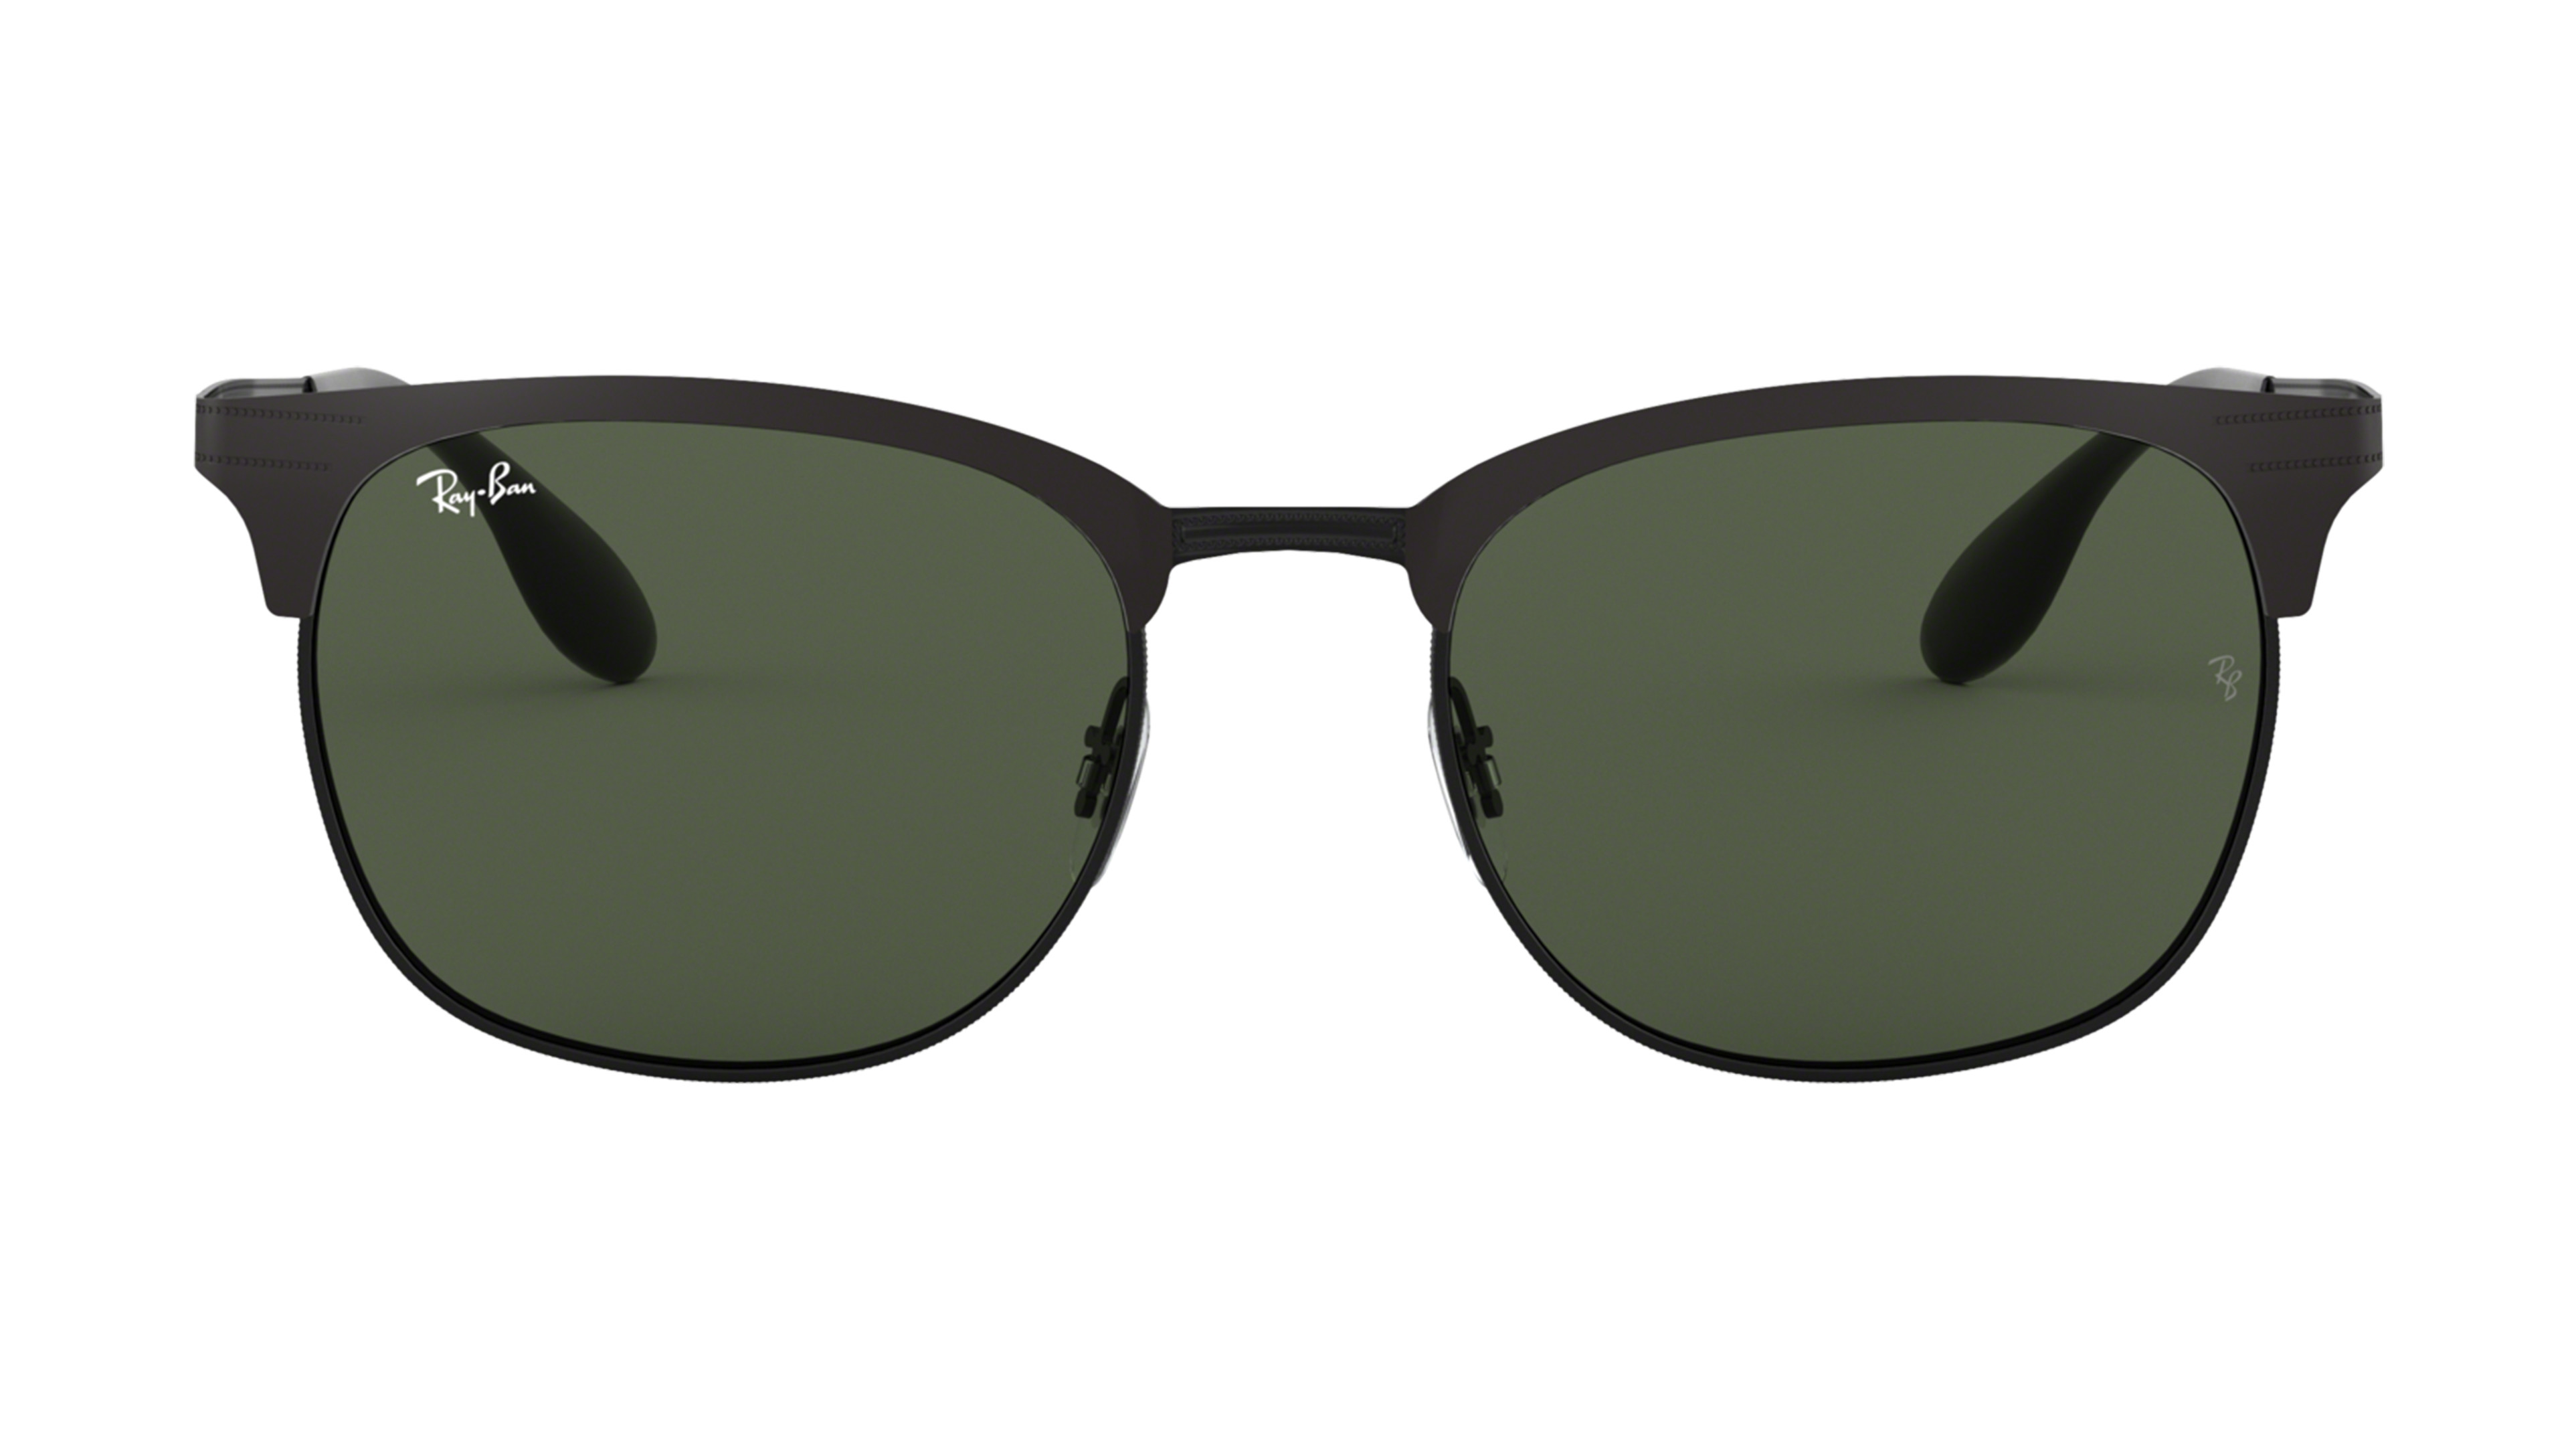 8053672560732-front-Ray-Ban-0RB3538-186-71